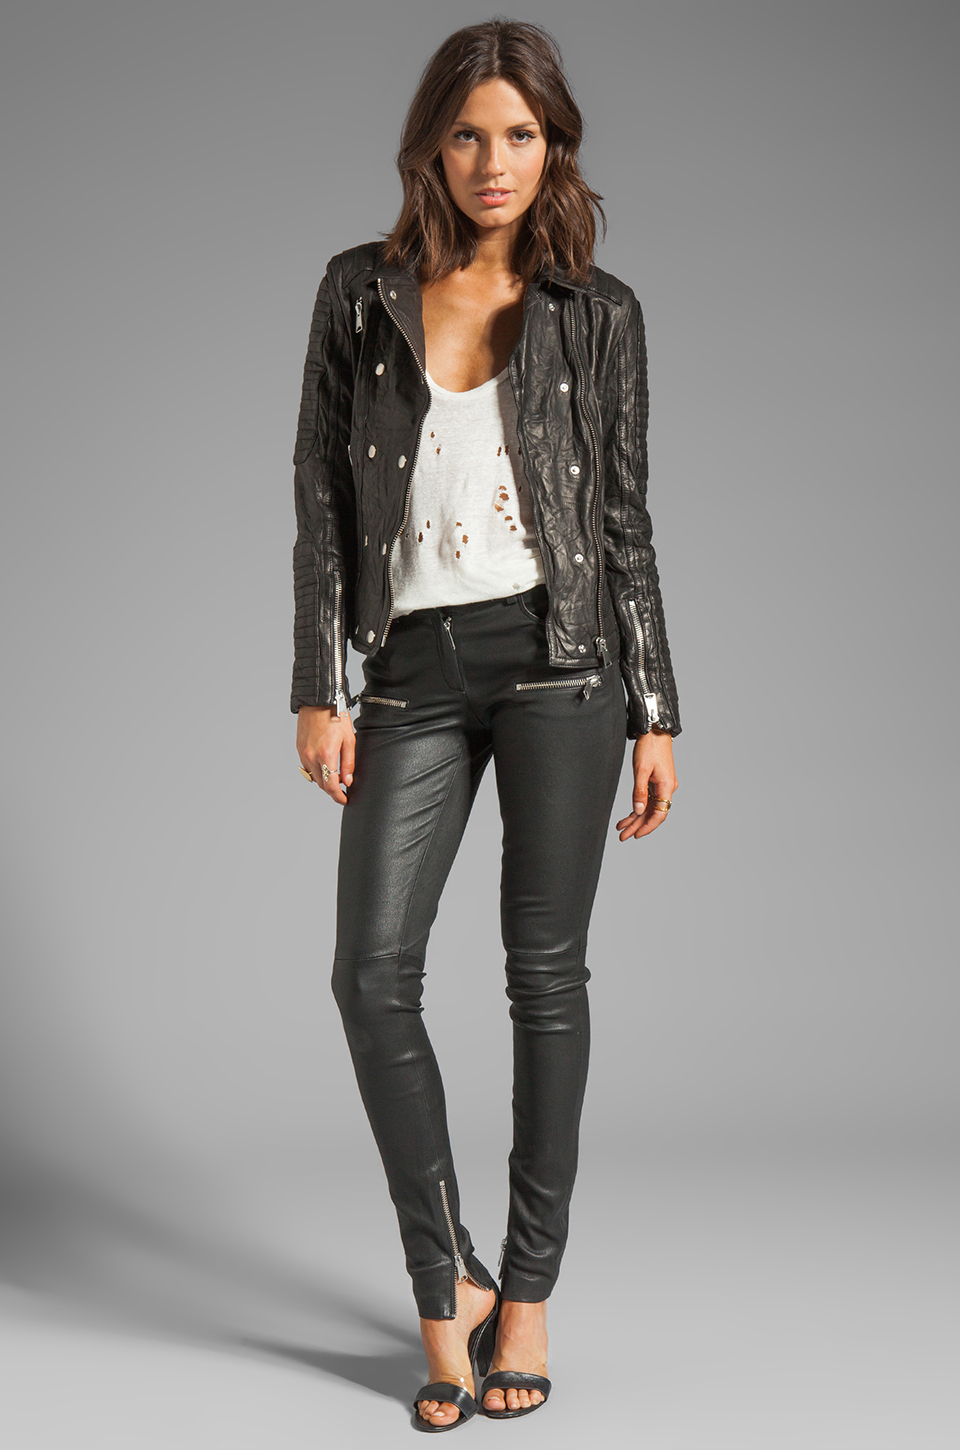 Leather jackets in fashion 43